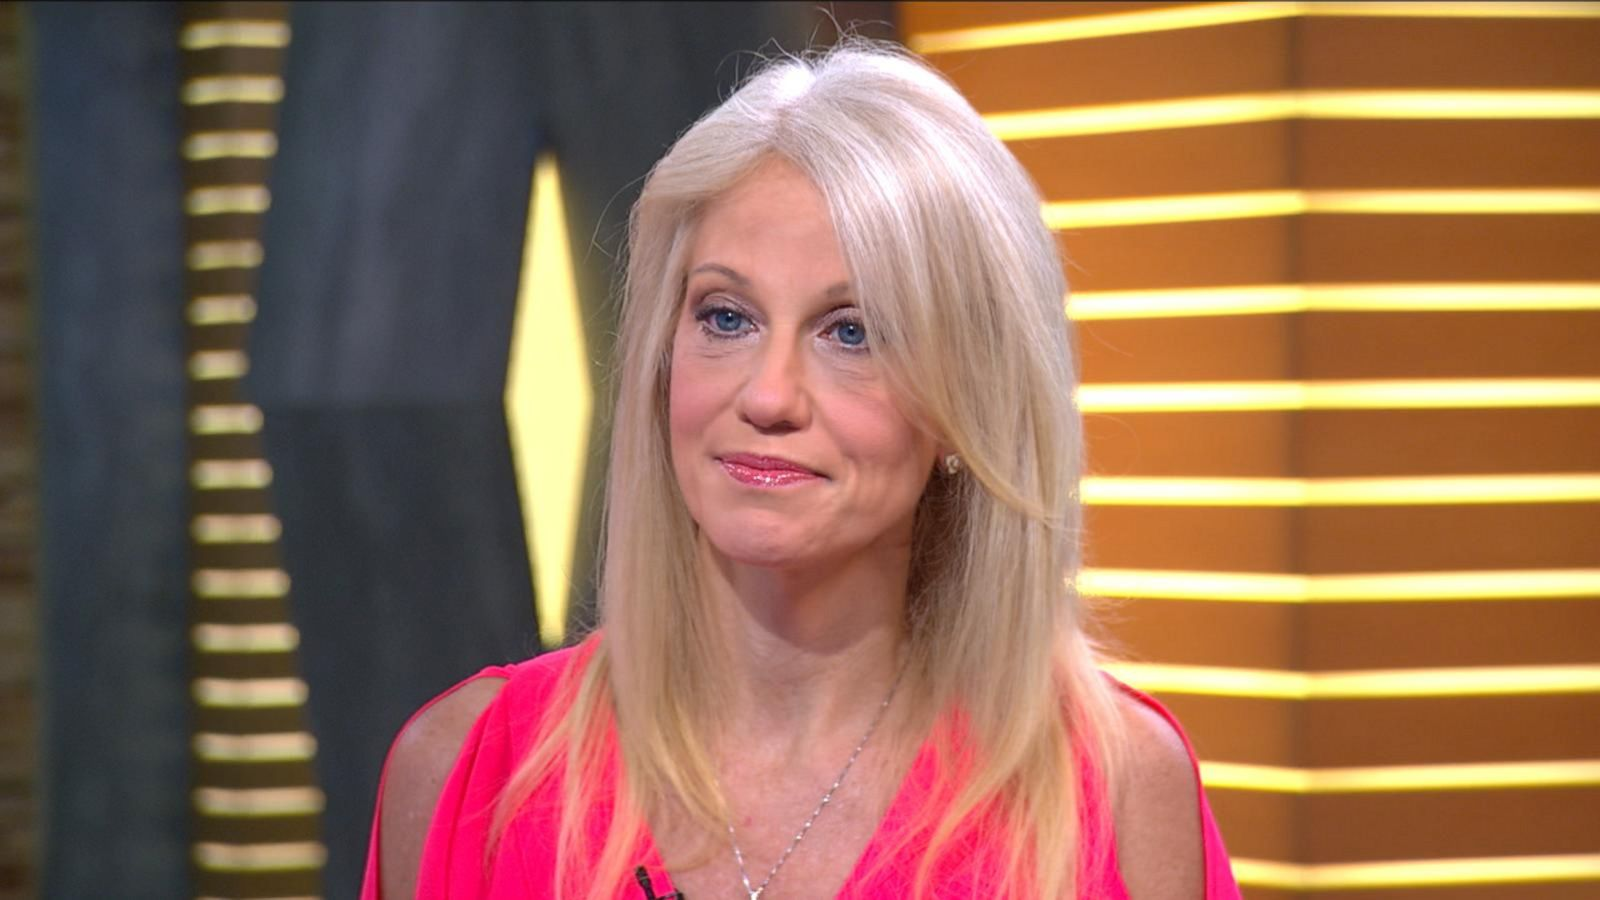 VIDEO: Donald Trump Campaign Manager Talks Latest Controversies